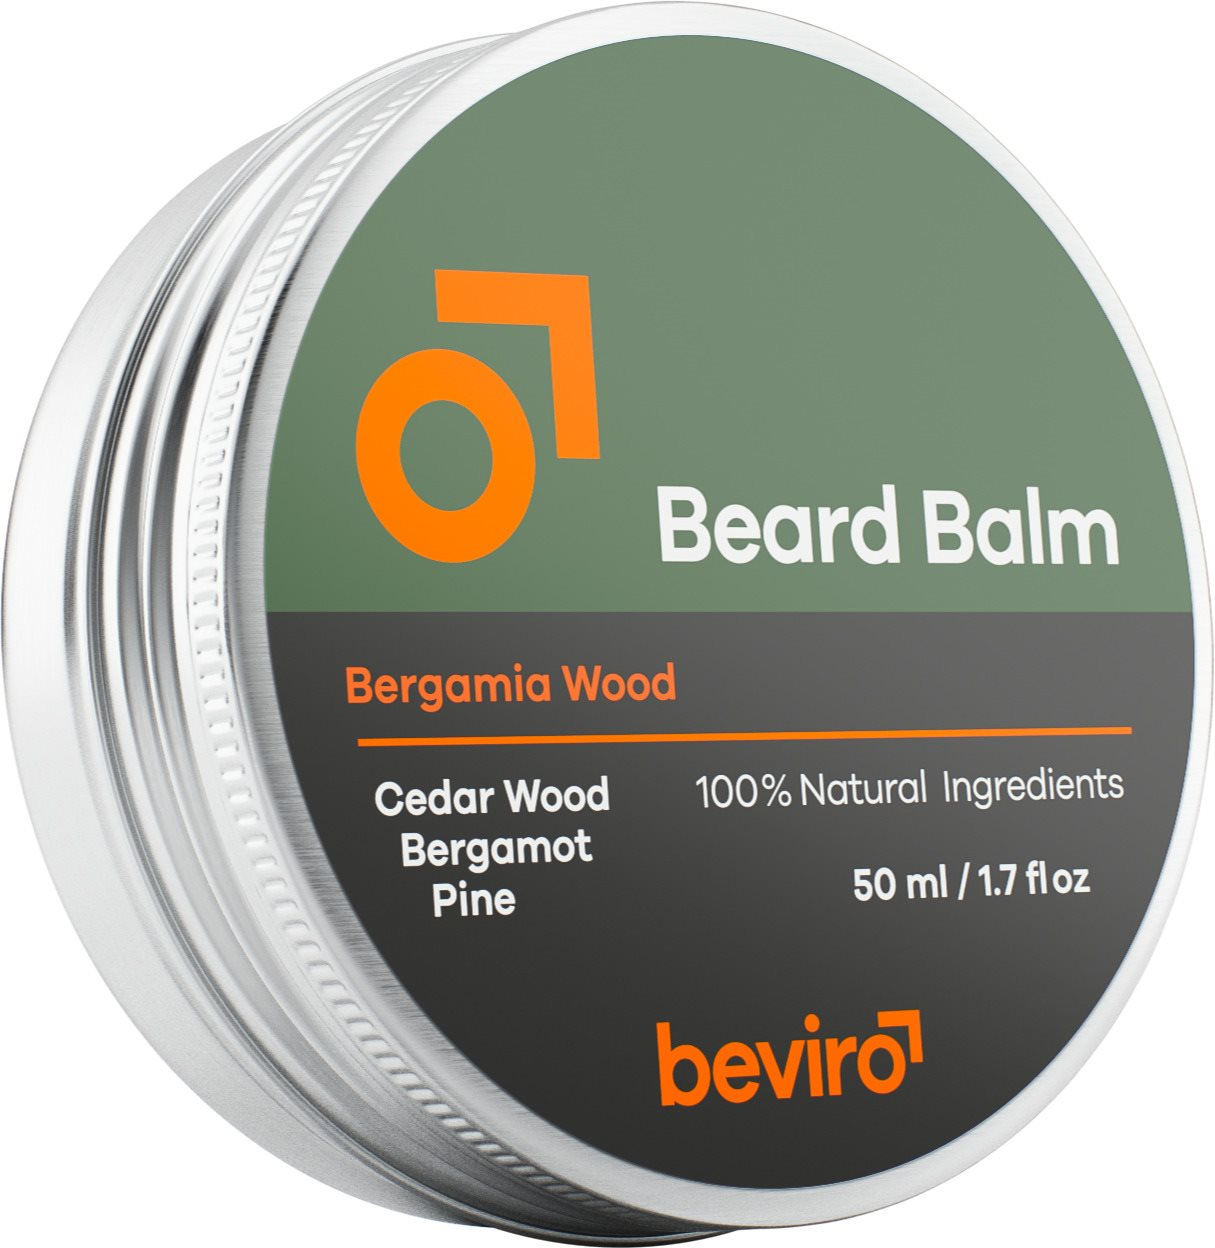 BEVIRO Bergamia Wood 50 ml